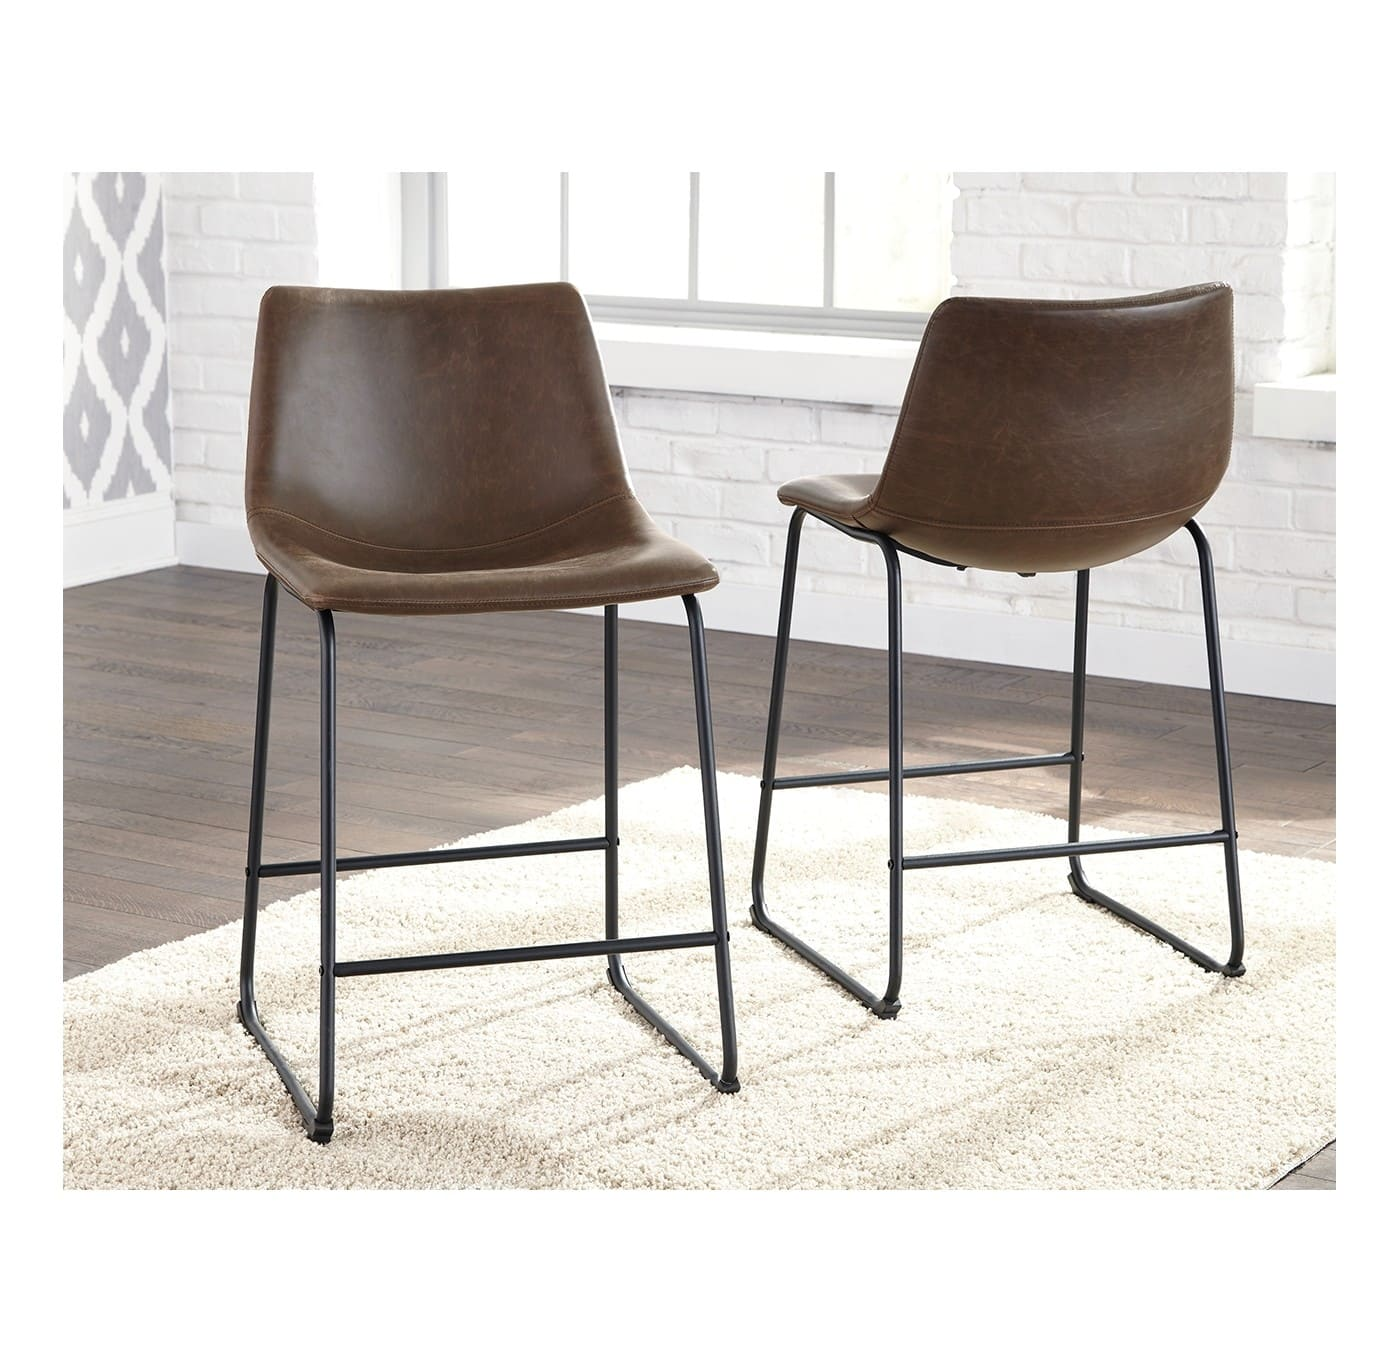 Set of 2 Barstools Brown/Black - Signature Design by Ashley for $76